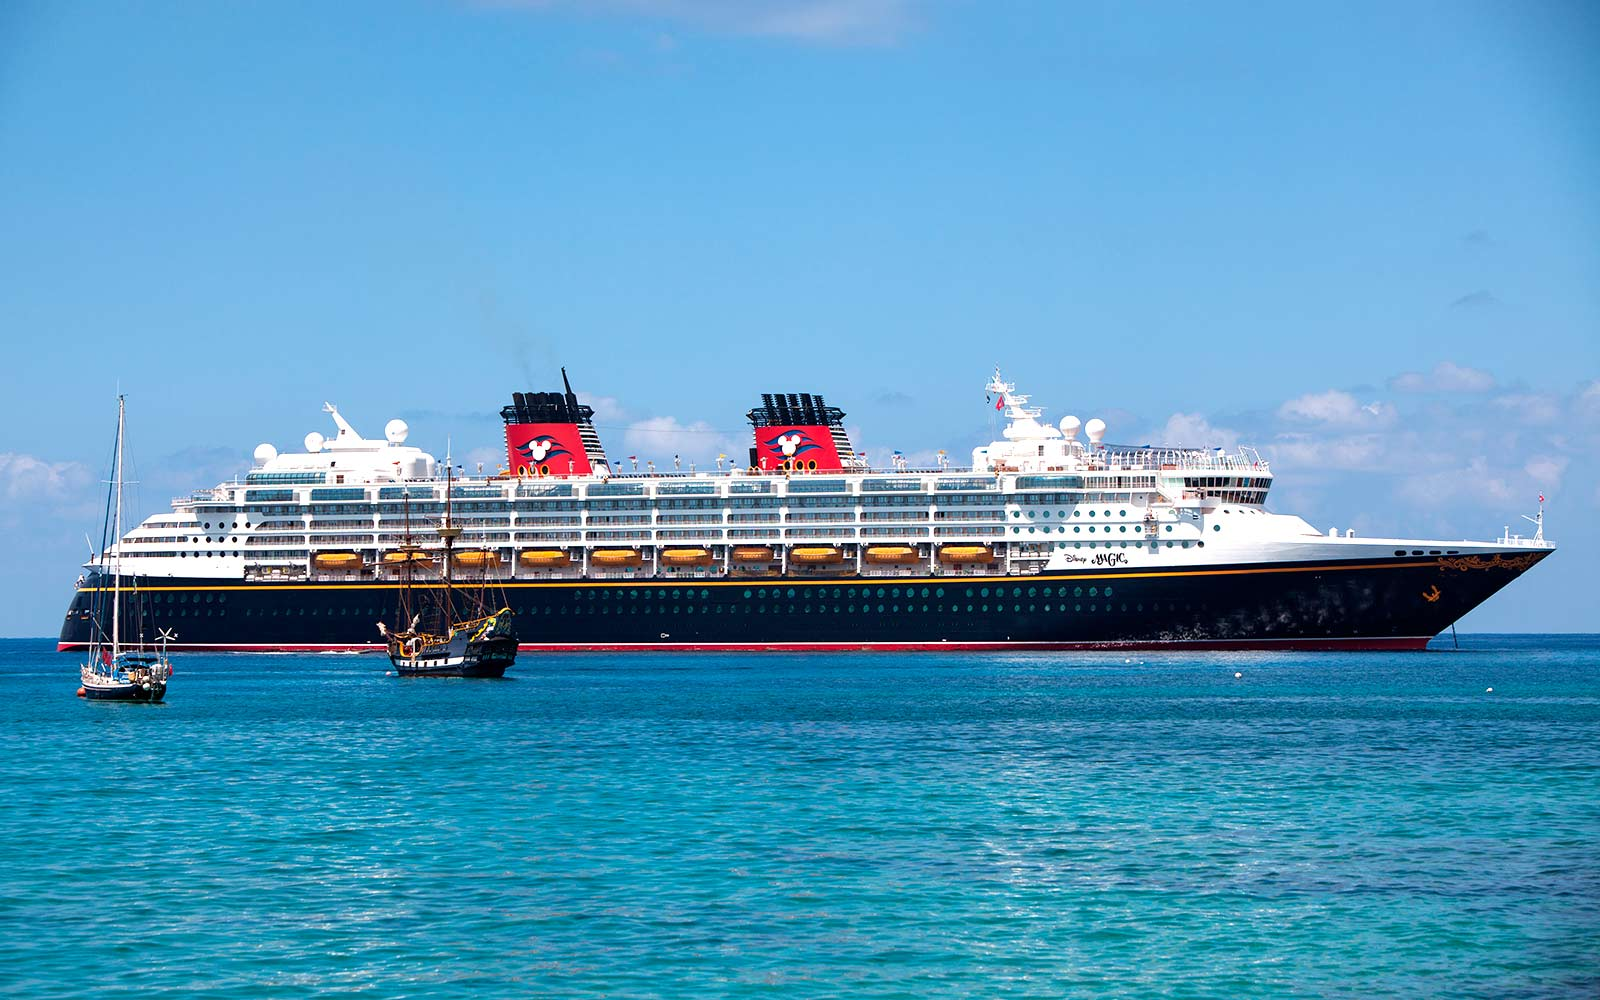 You Can Take a Disney Cruise With Your Favorite Marvel Characters Next Year